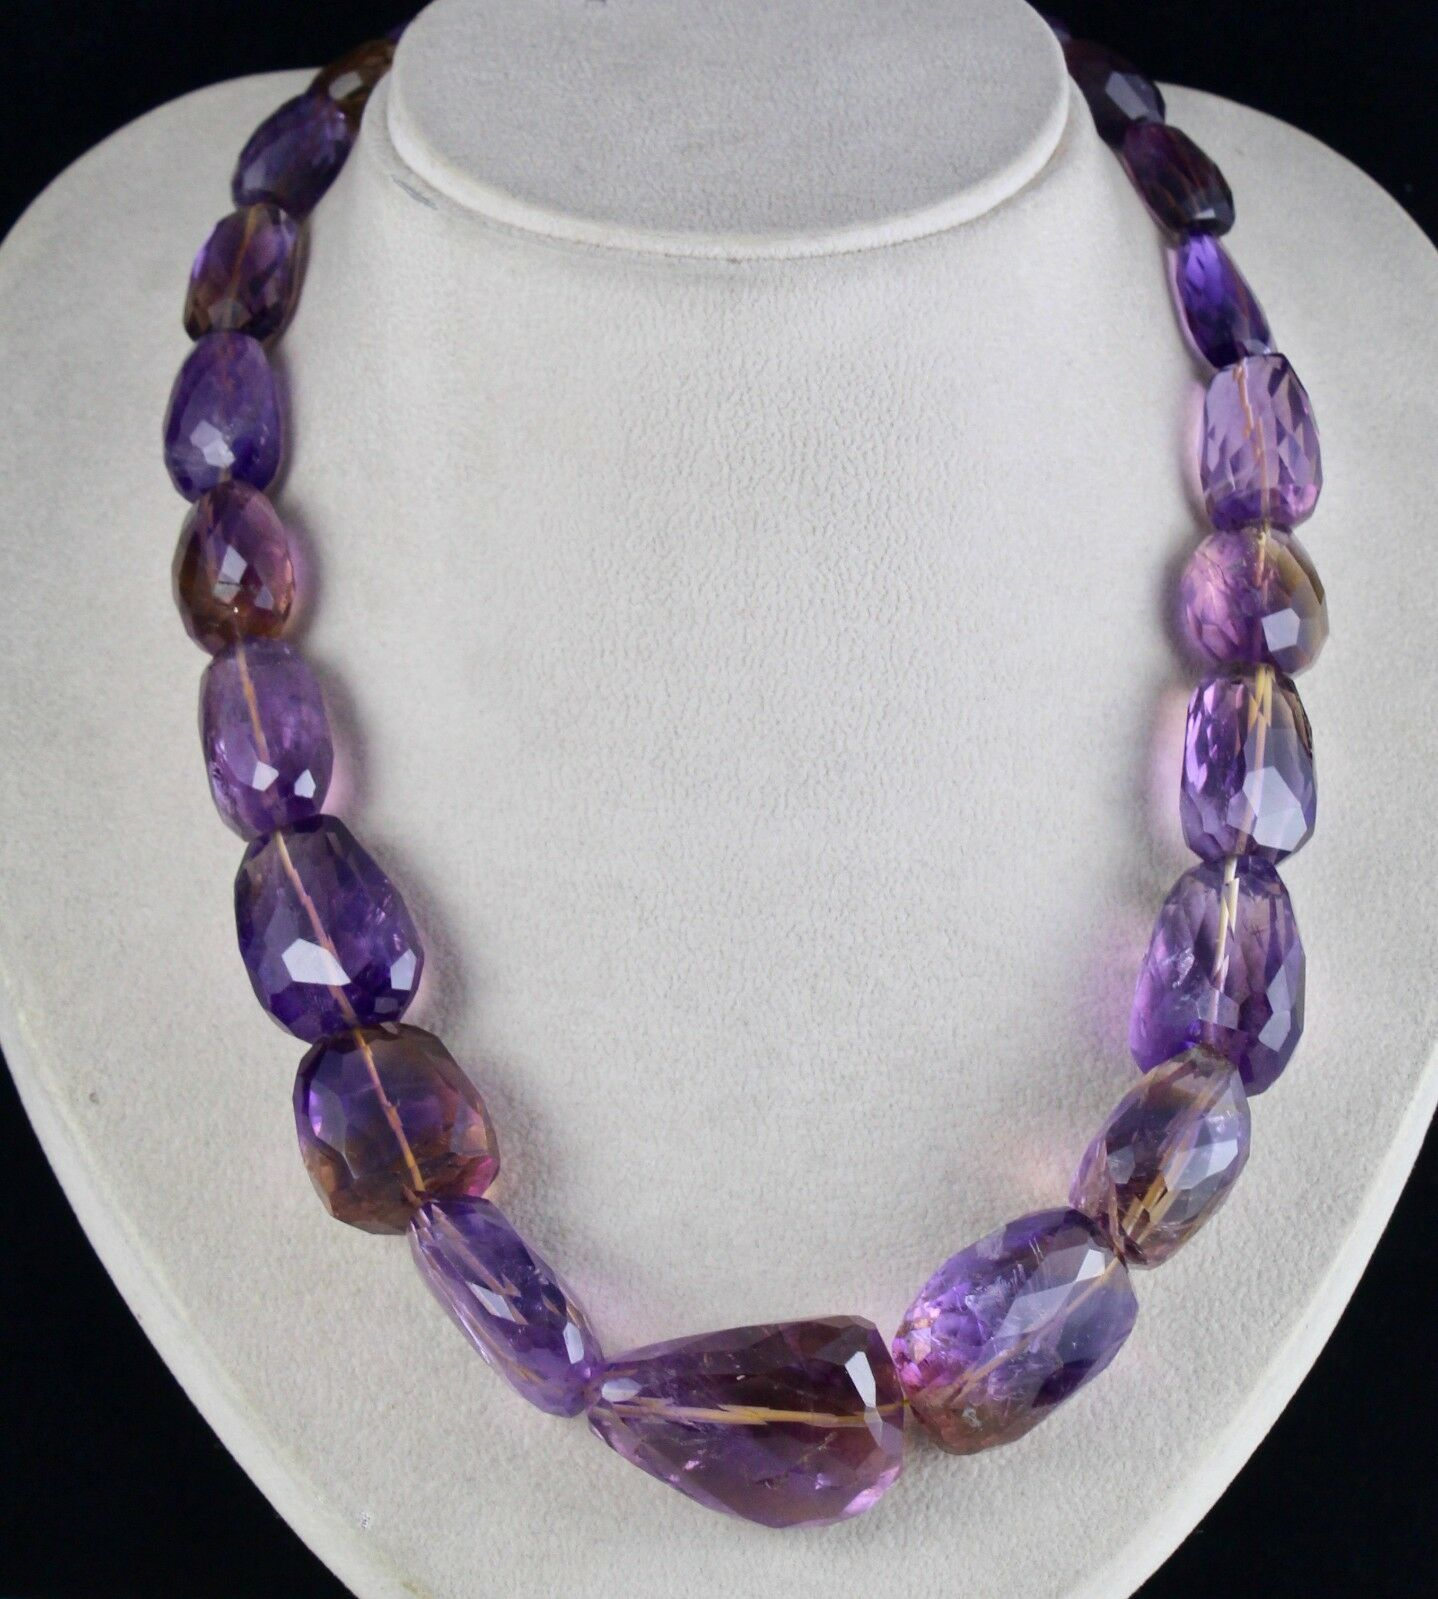 Primary image for NATURAL AMETRINE BEADS FACETED TUMBLE 1088 CTS GEMSTONE LADIES SILVER NECKLACE